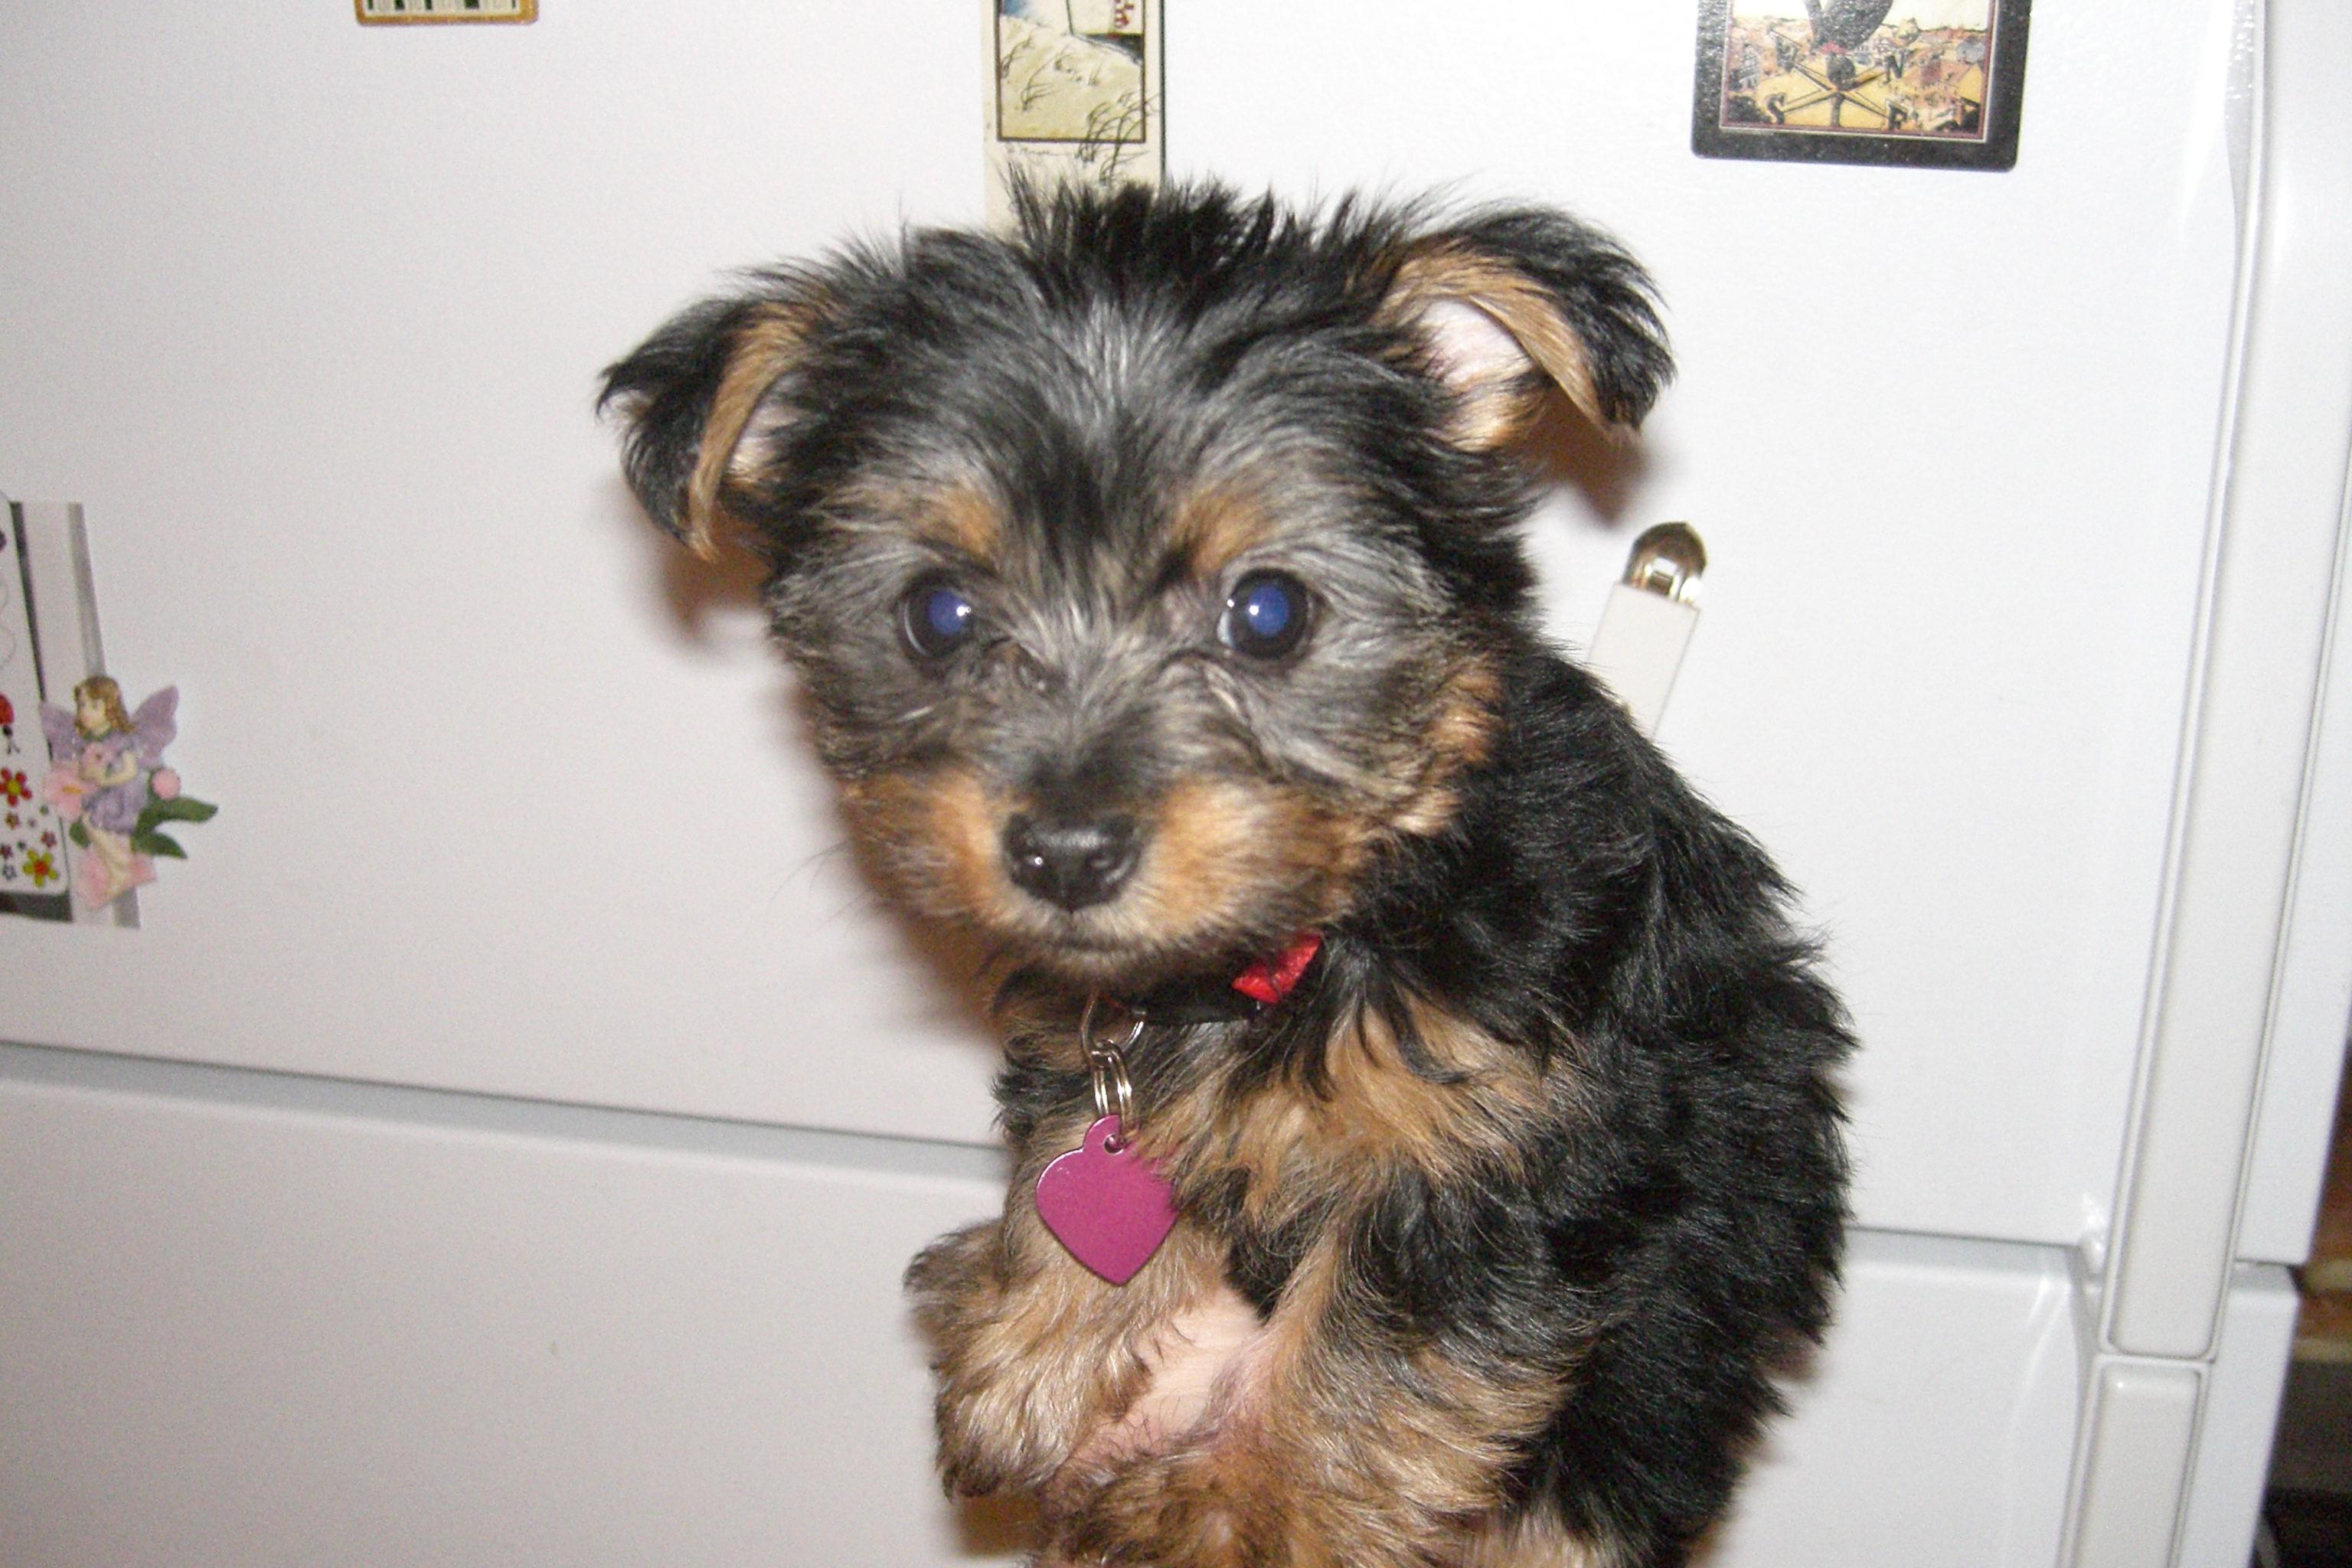 Cute little Silky Terrier puppy with pink collar